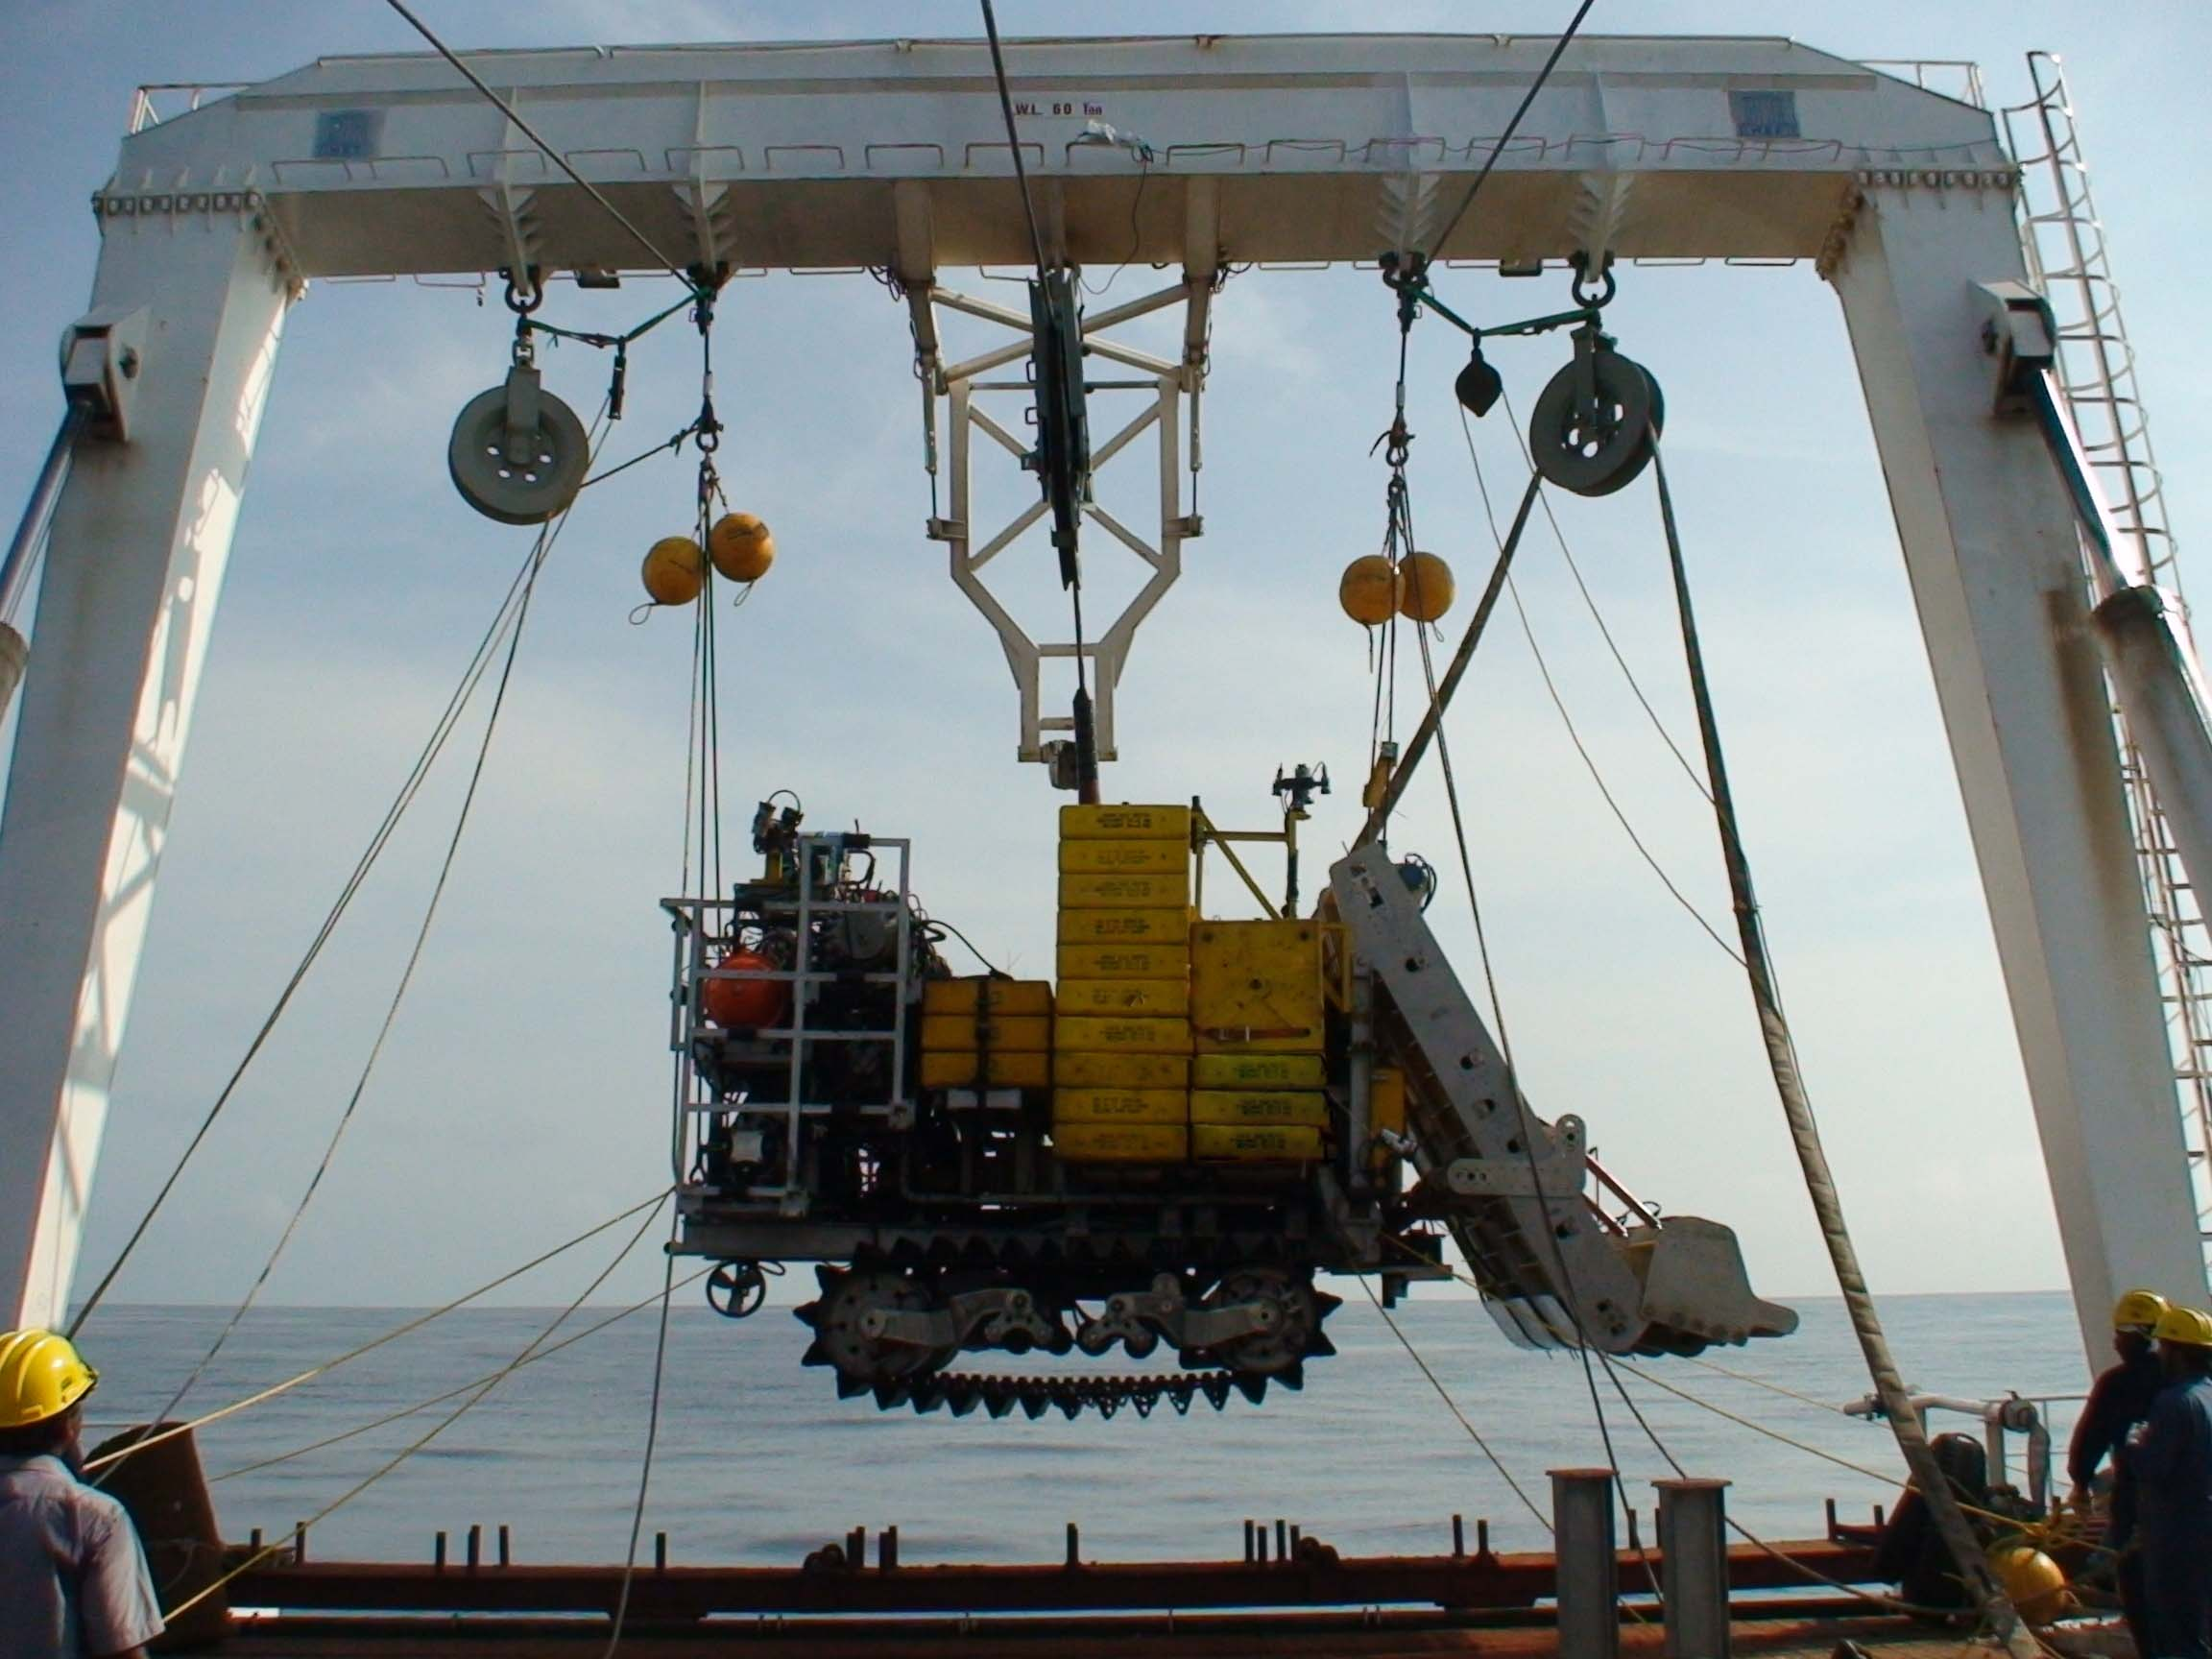 Can India mine deep-sea resources without disturbing the Indian Ocean seabed ecosystem?